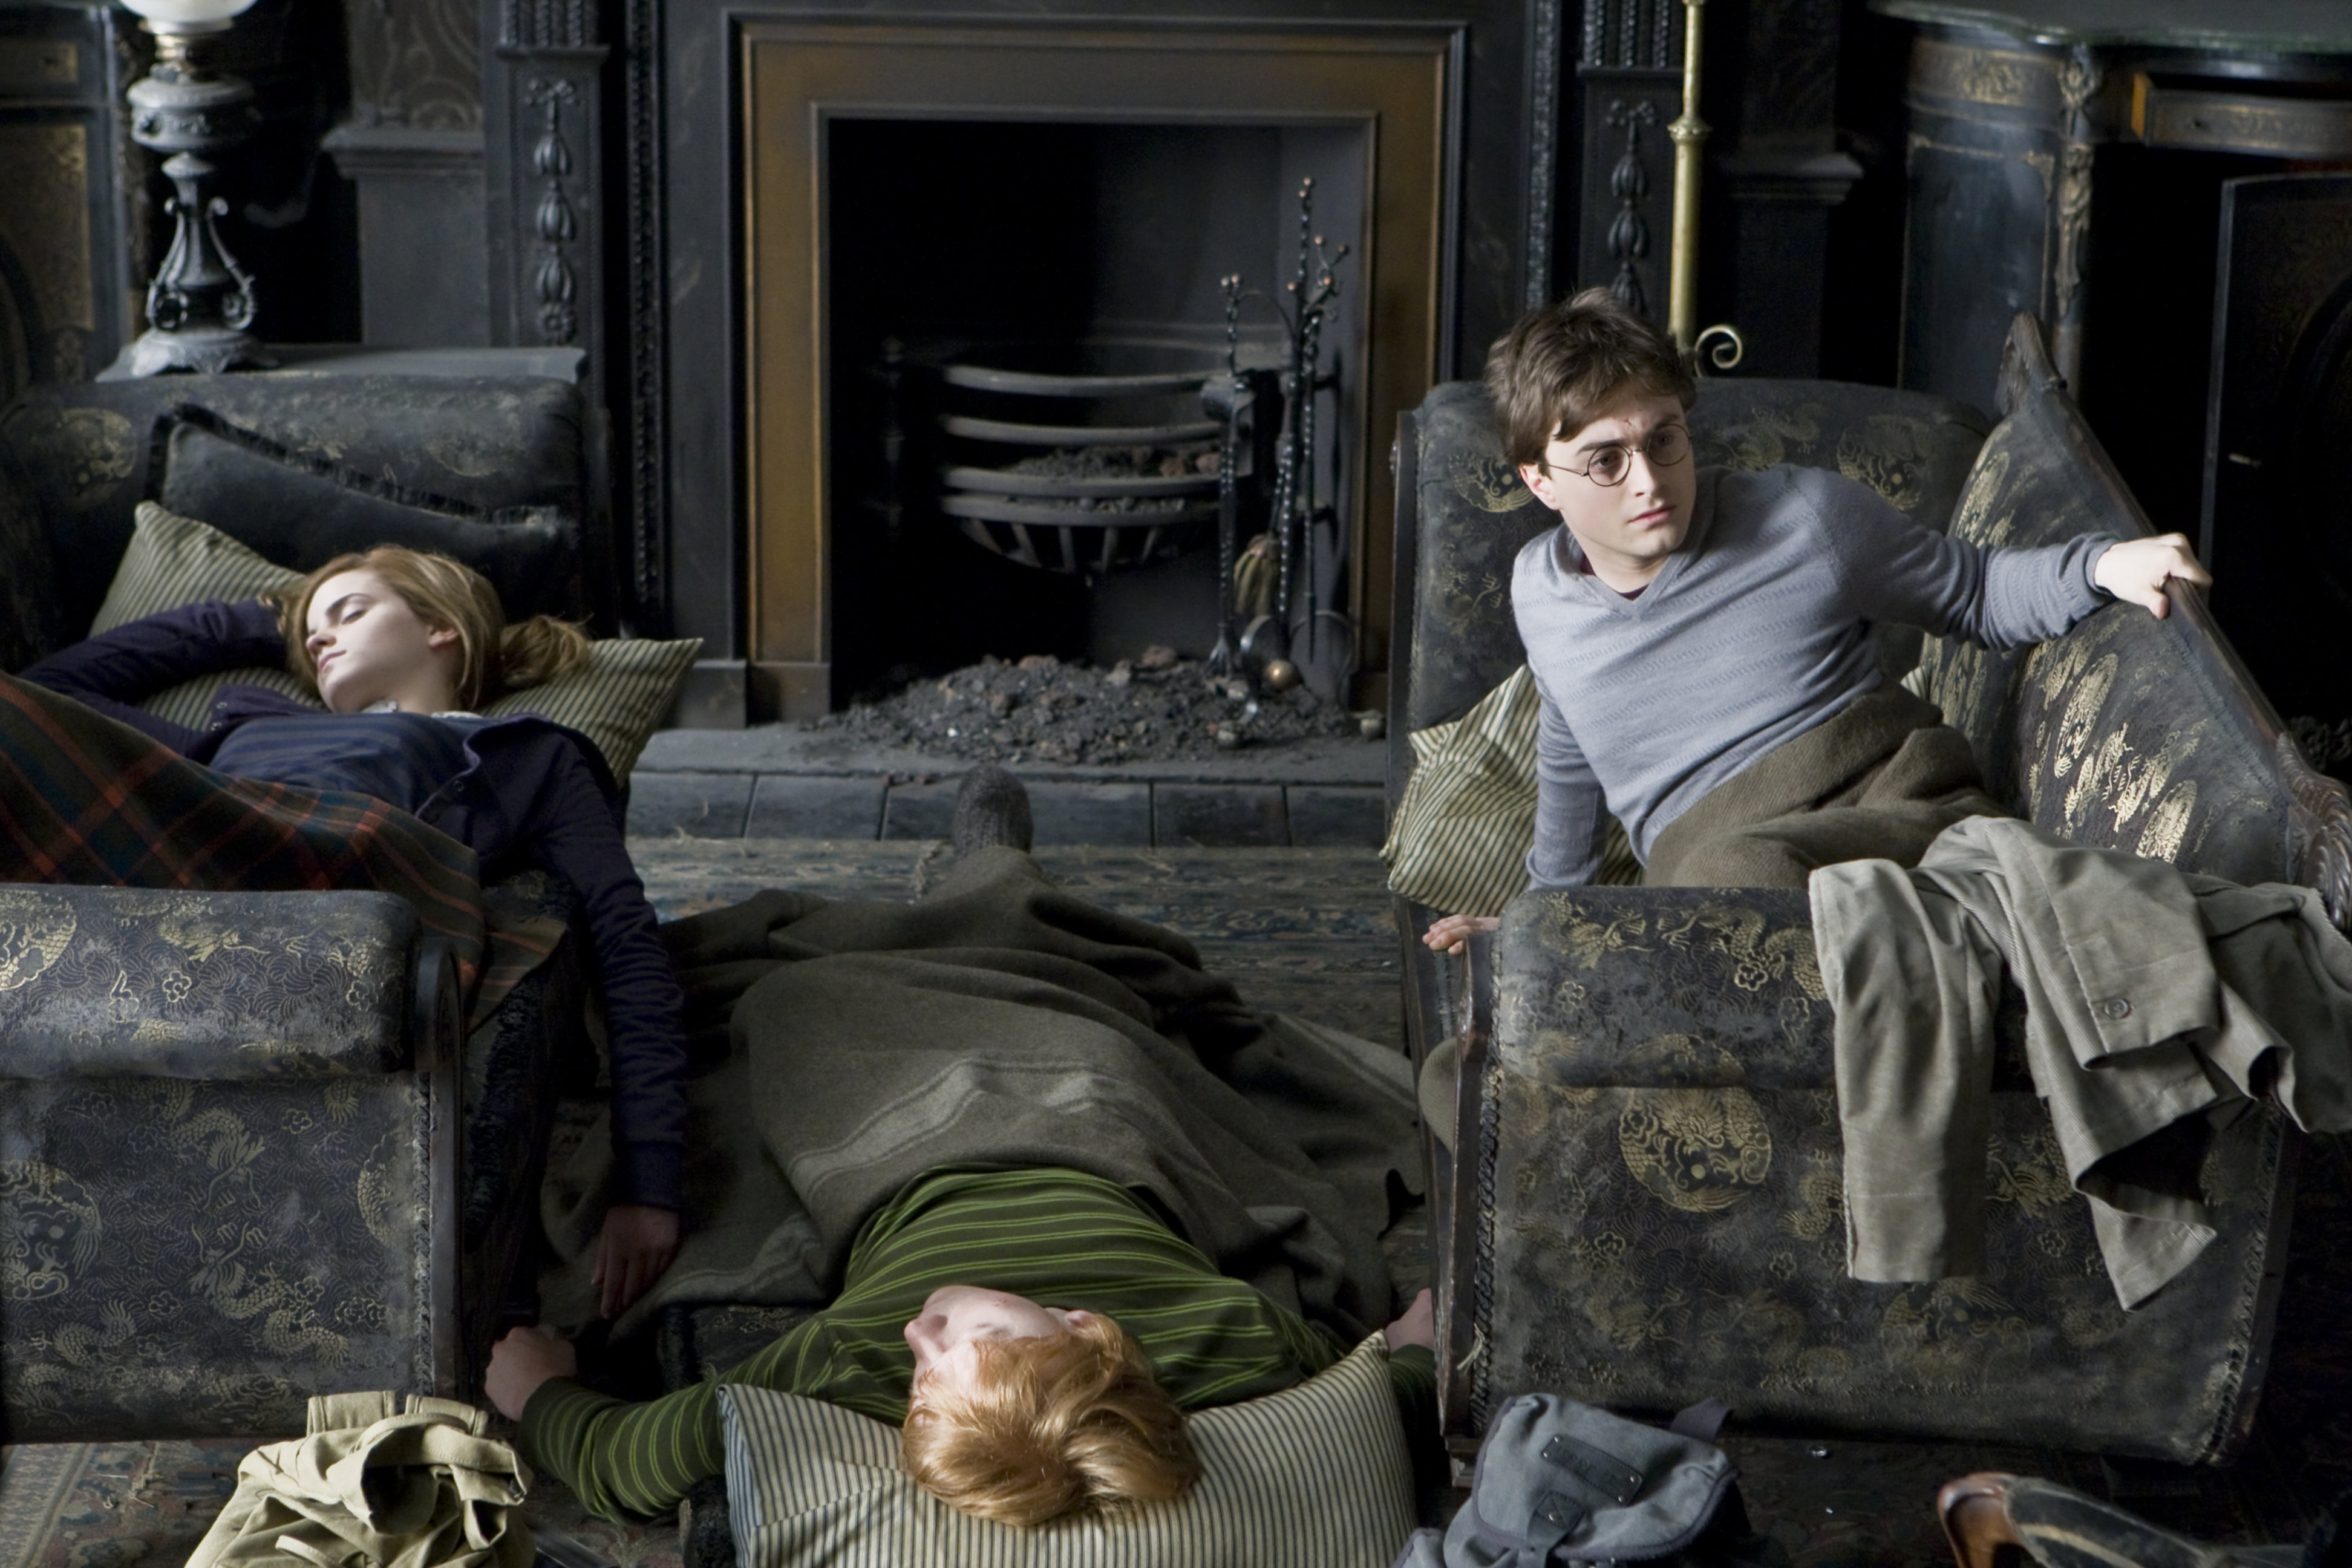 WB F7 Grimmauld Place Harry wakes up